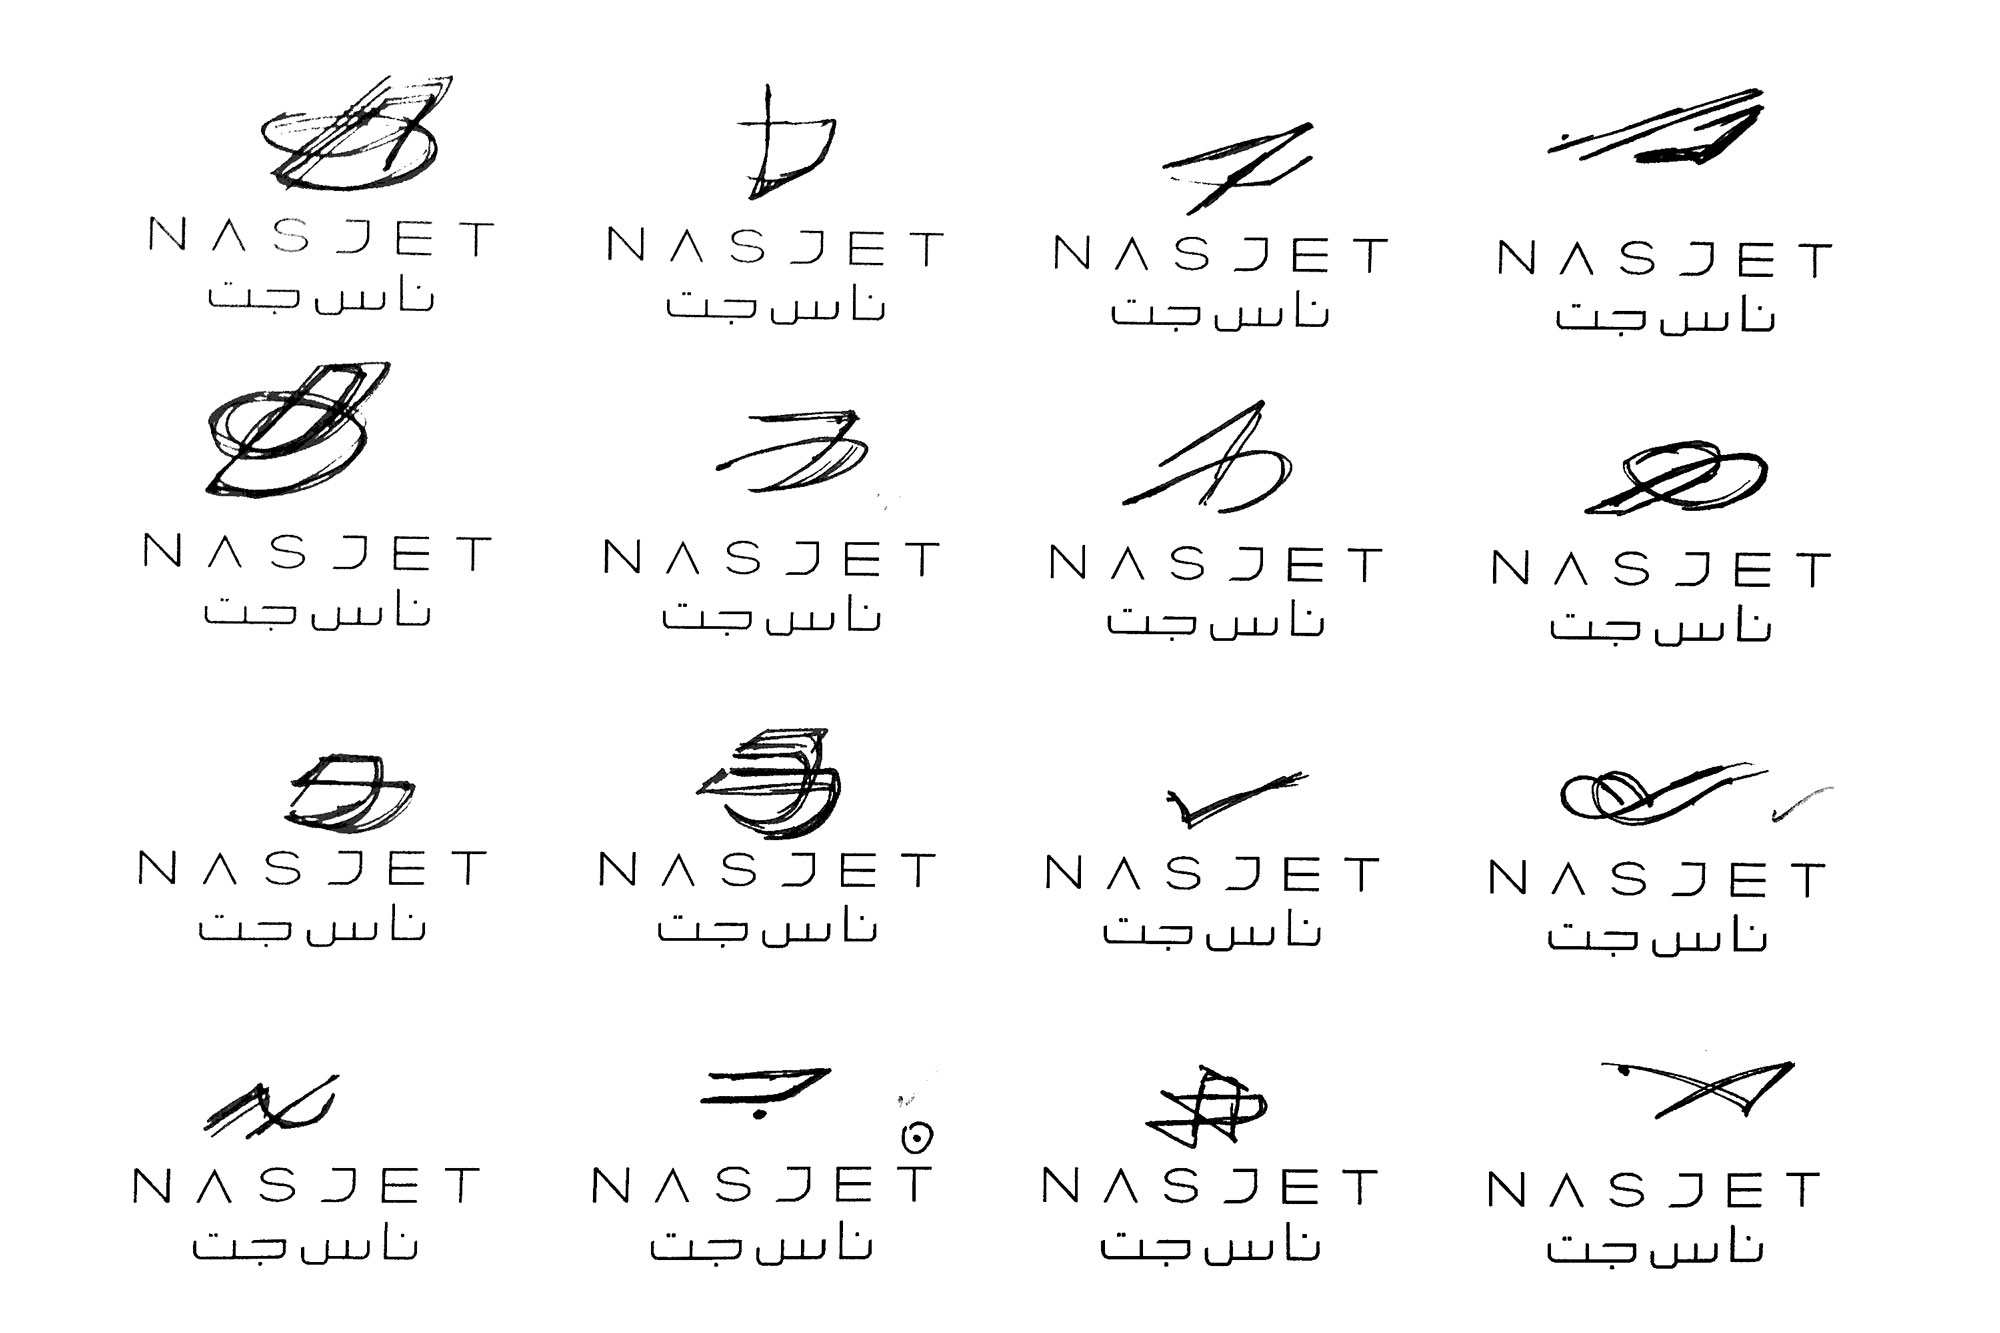 NasJet-Work-By-YaStudio-04a